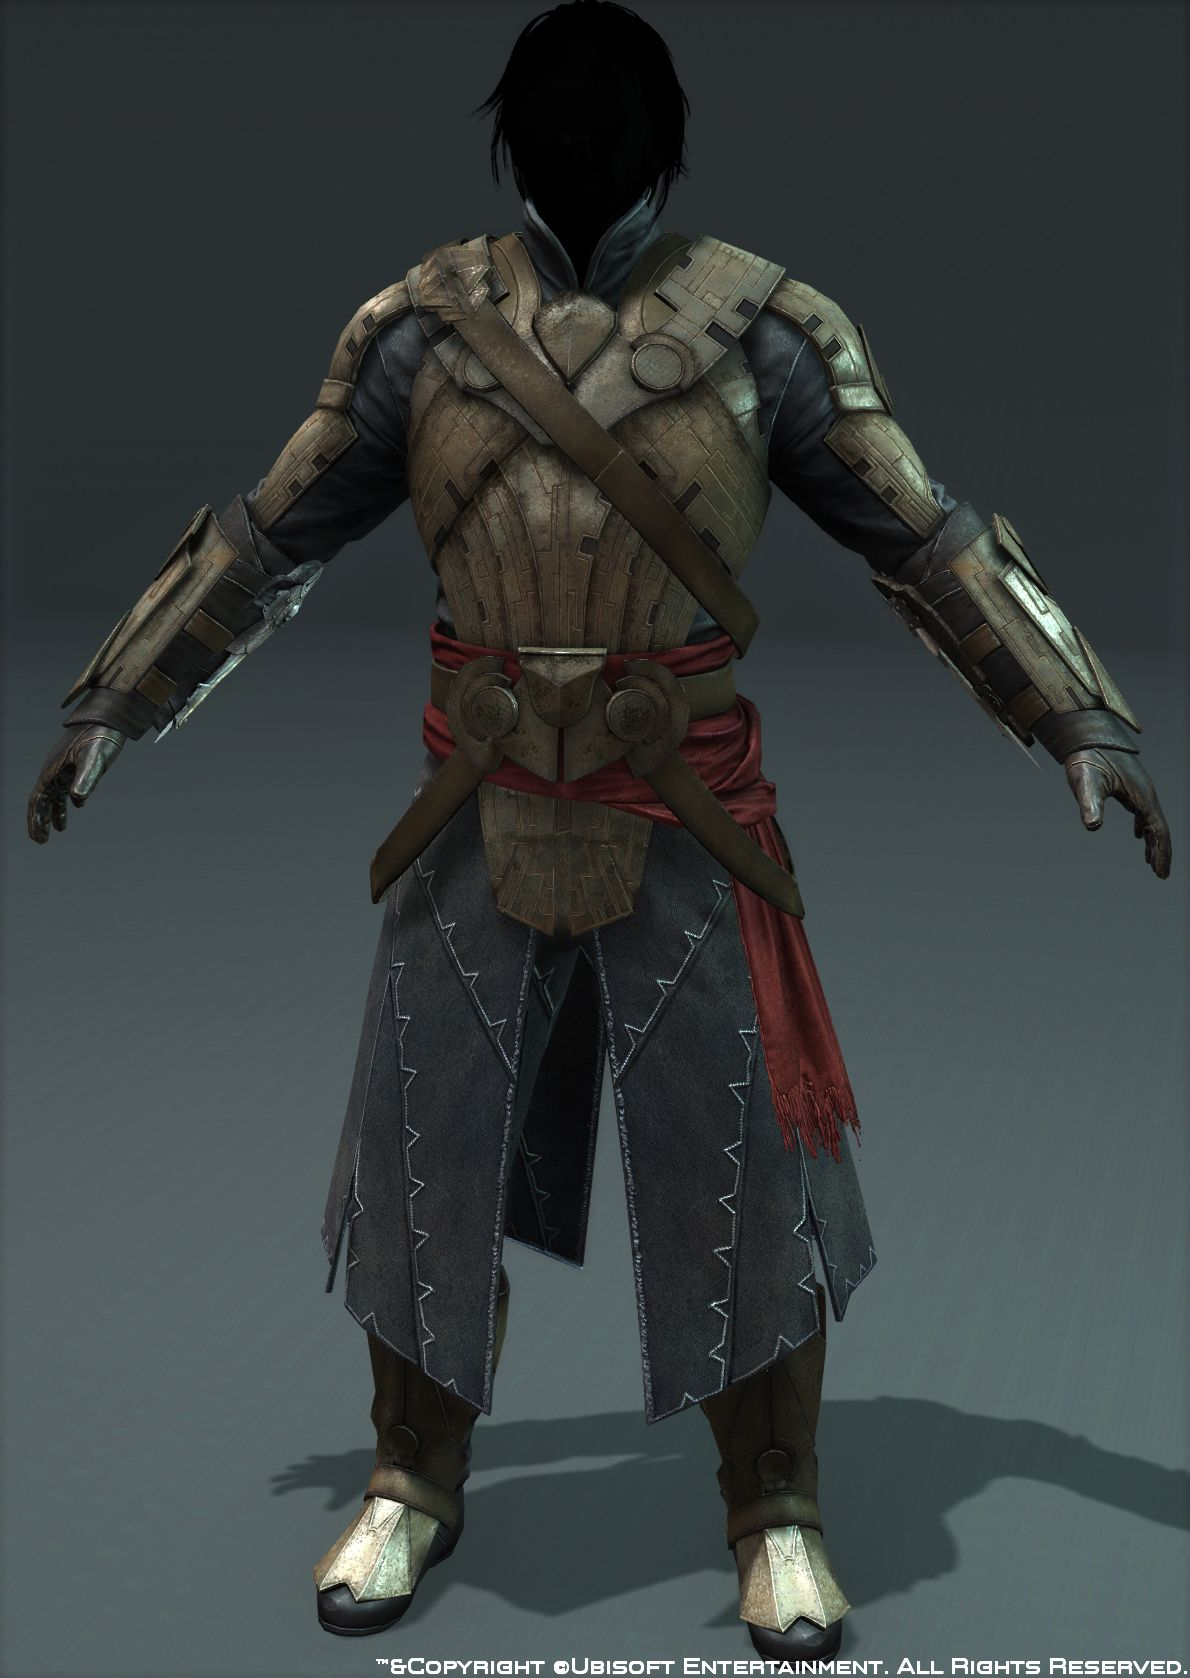 Mathieugoulet Alternate Costume Made For Edward The Main